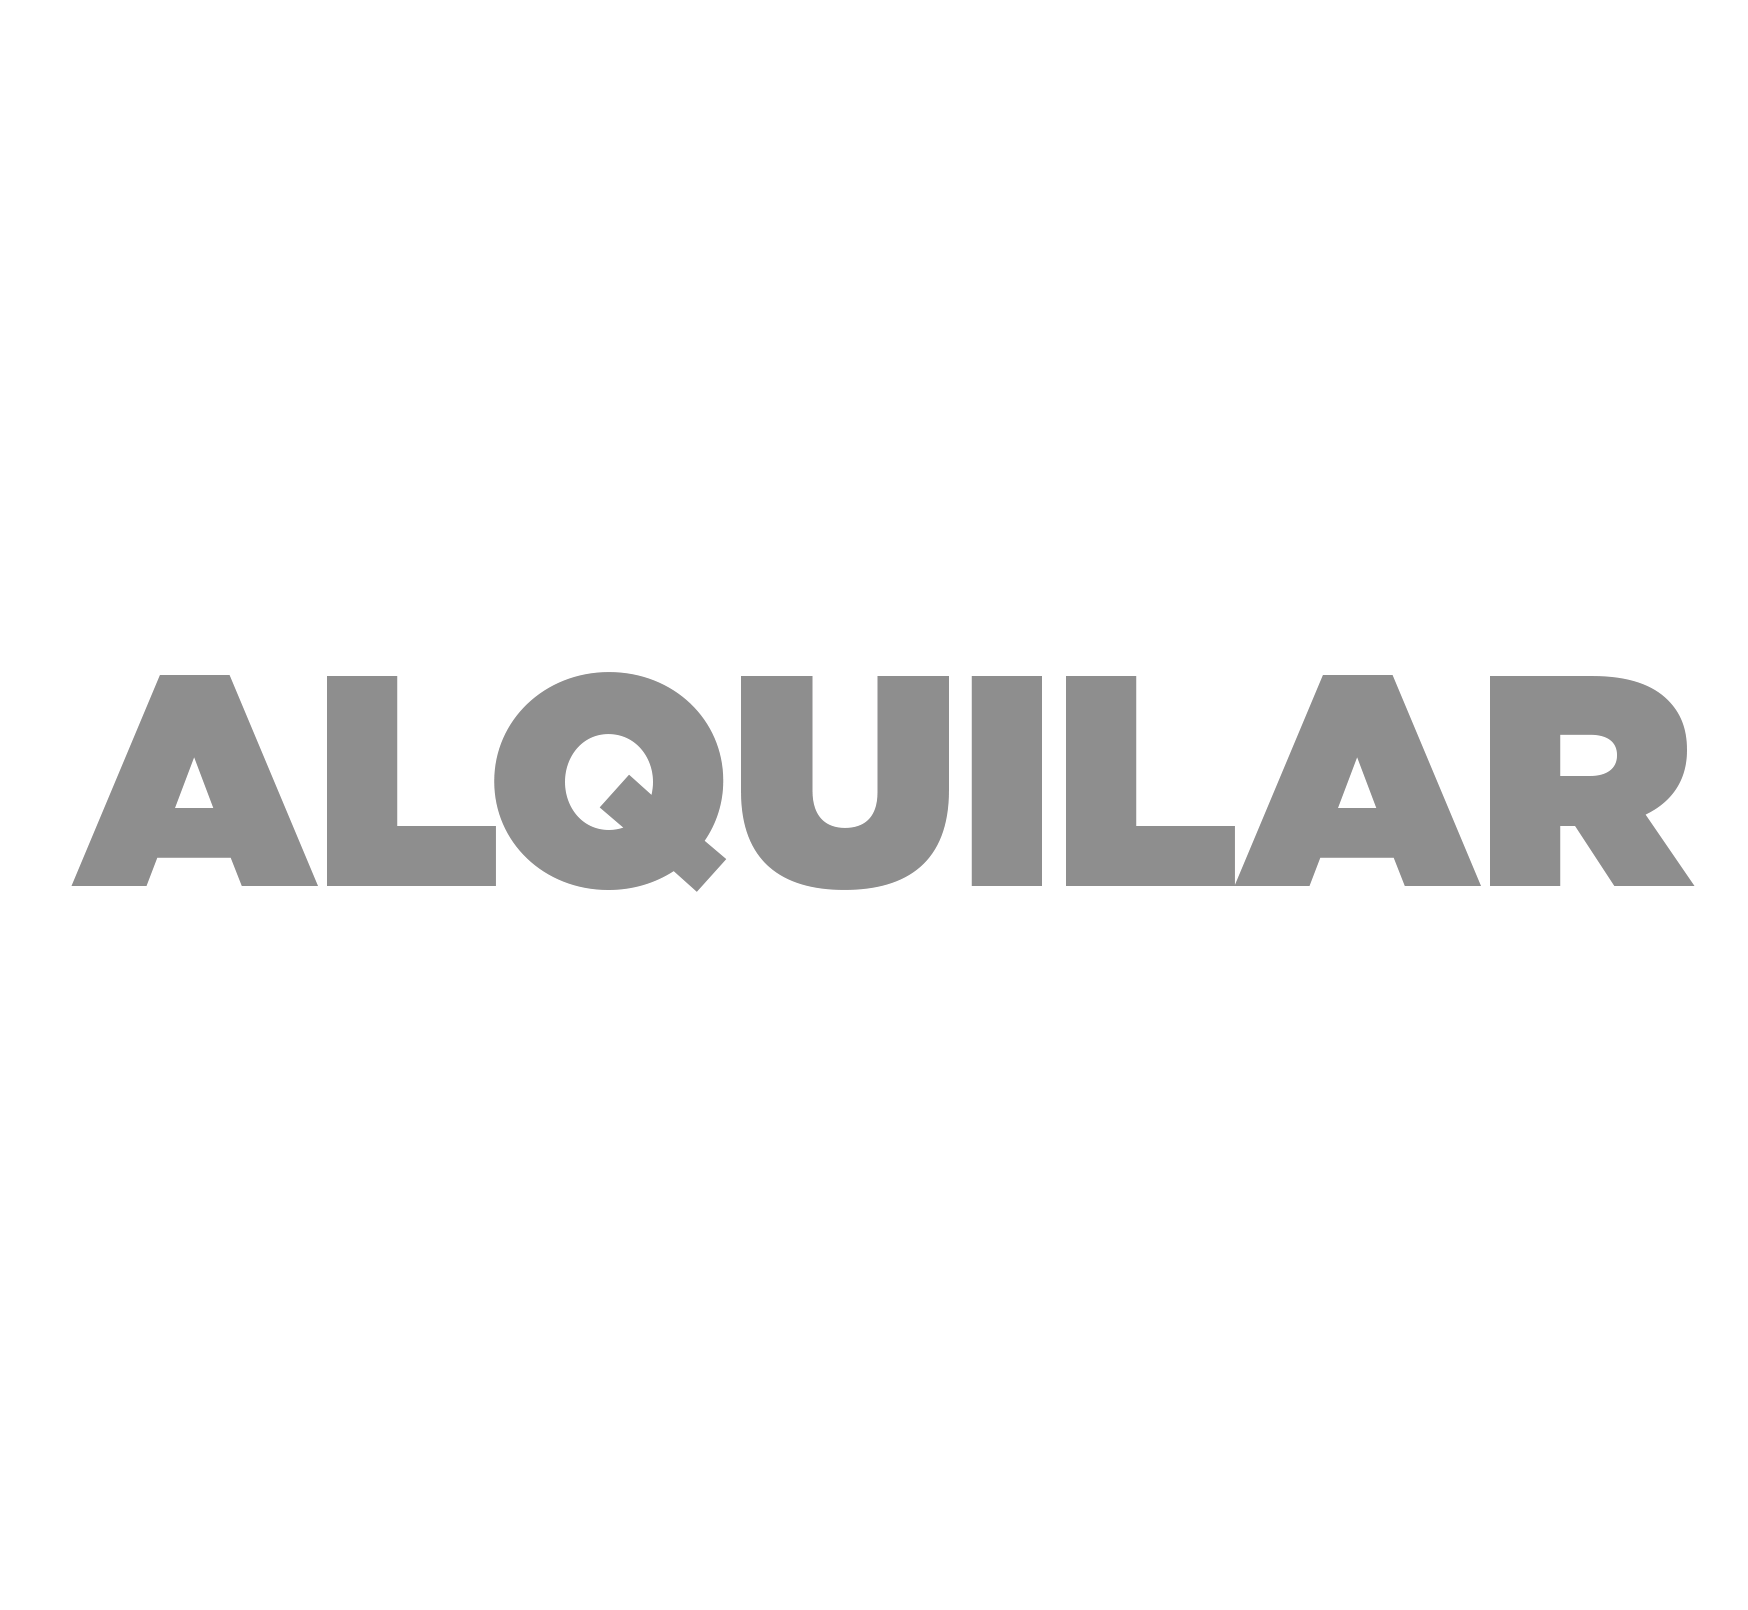 alquilar.png